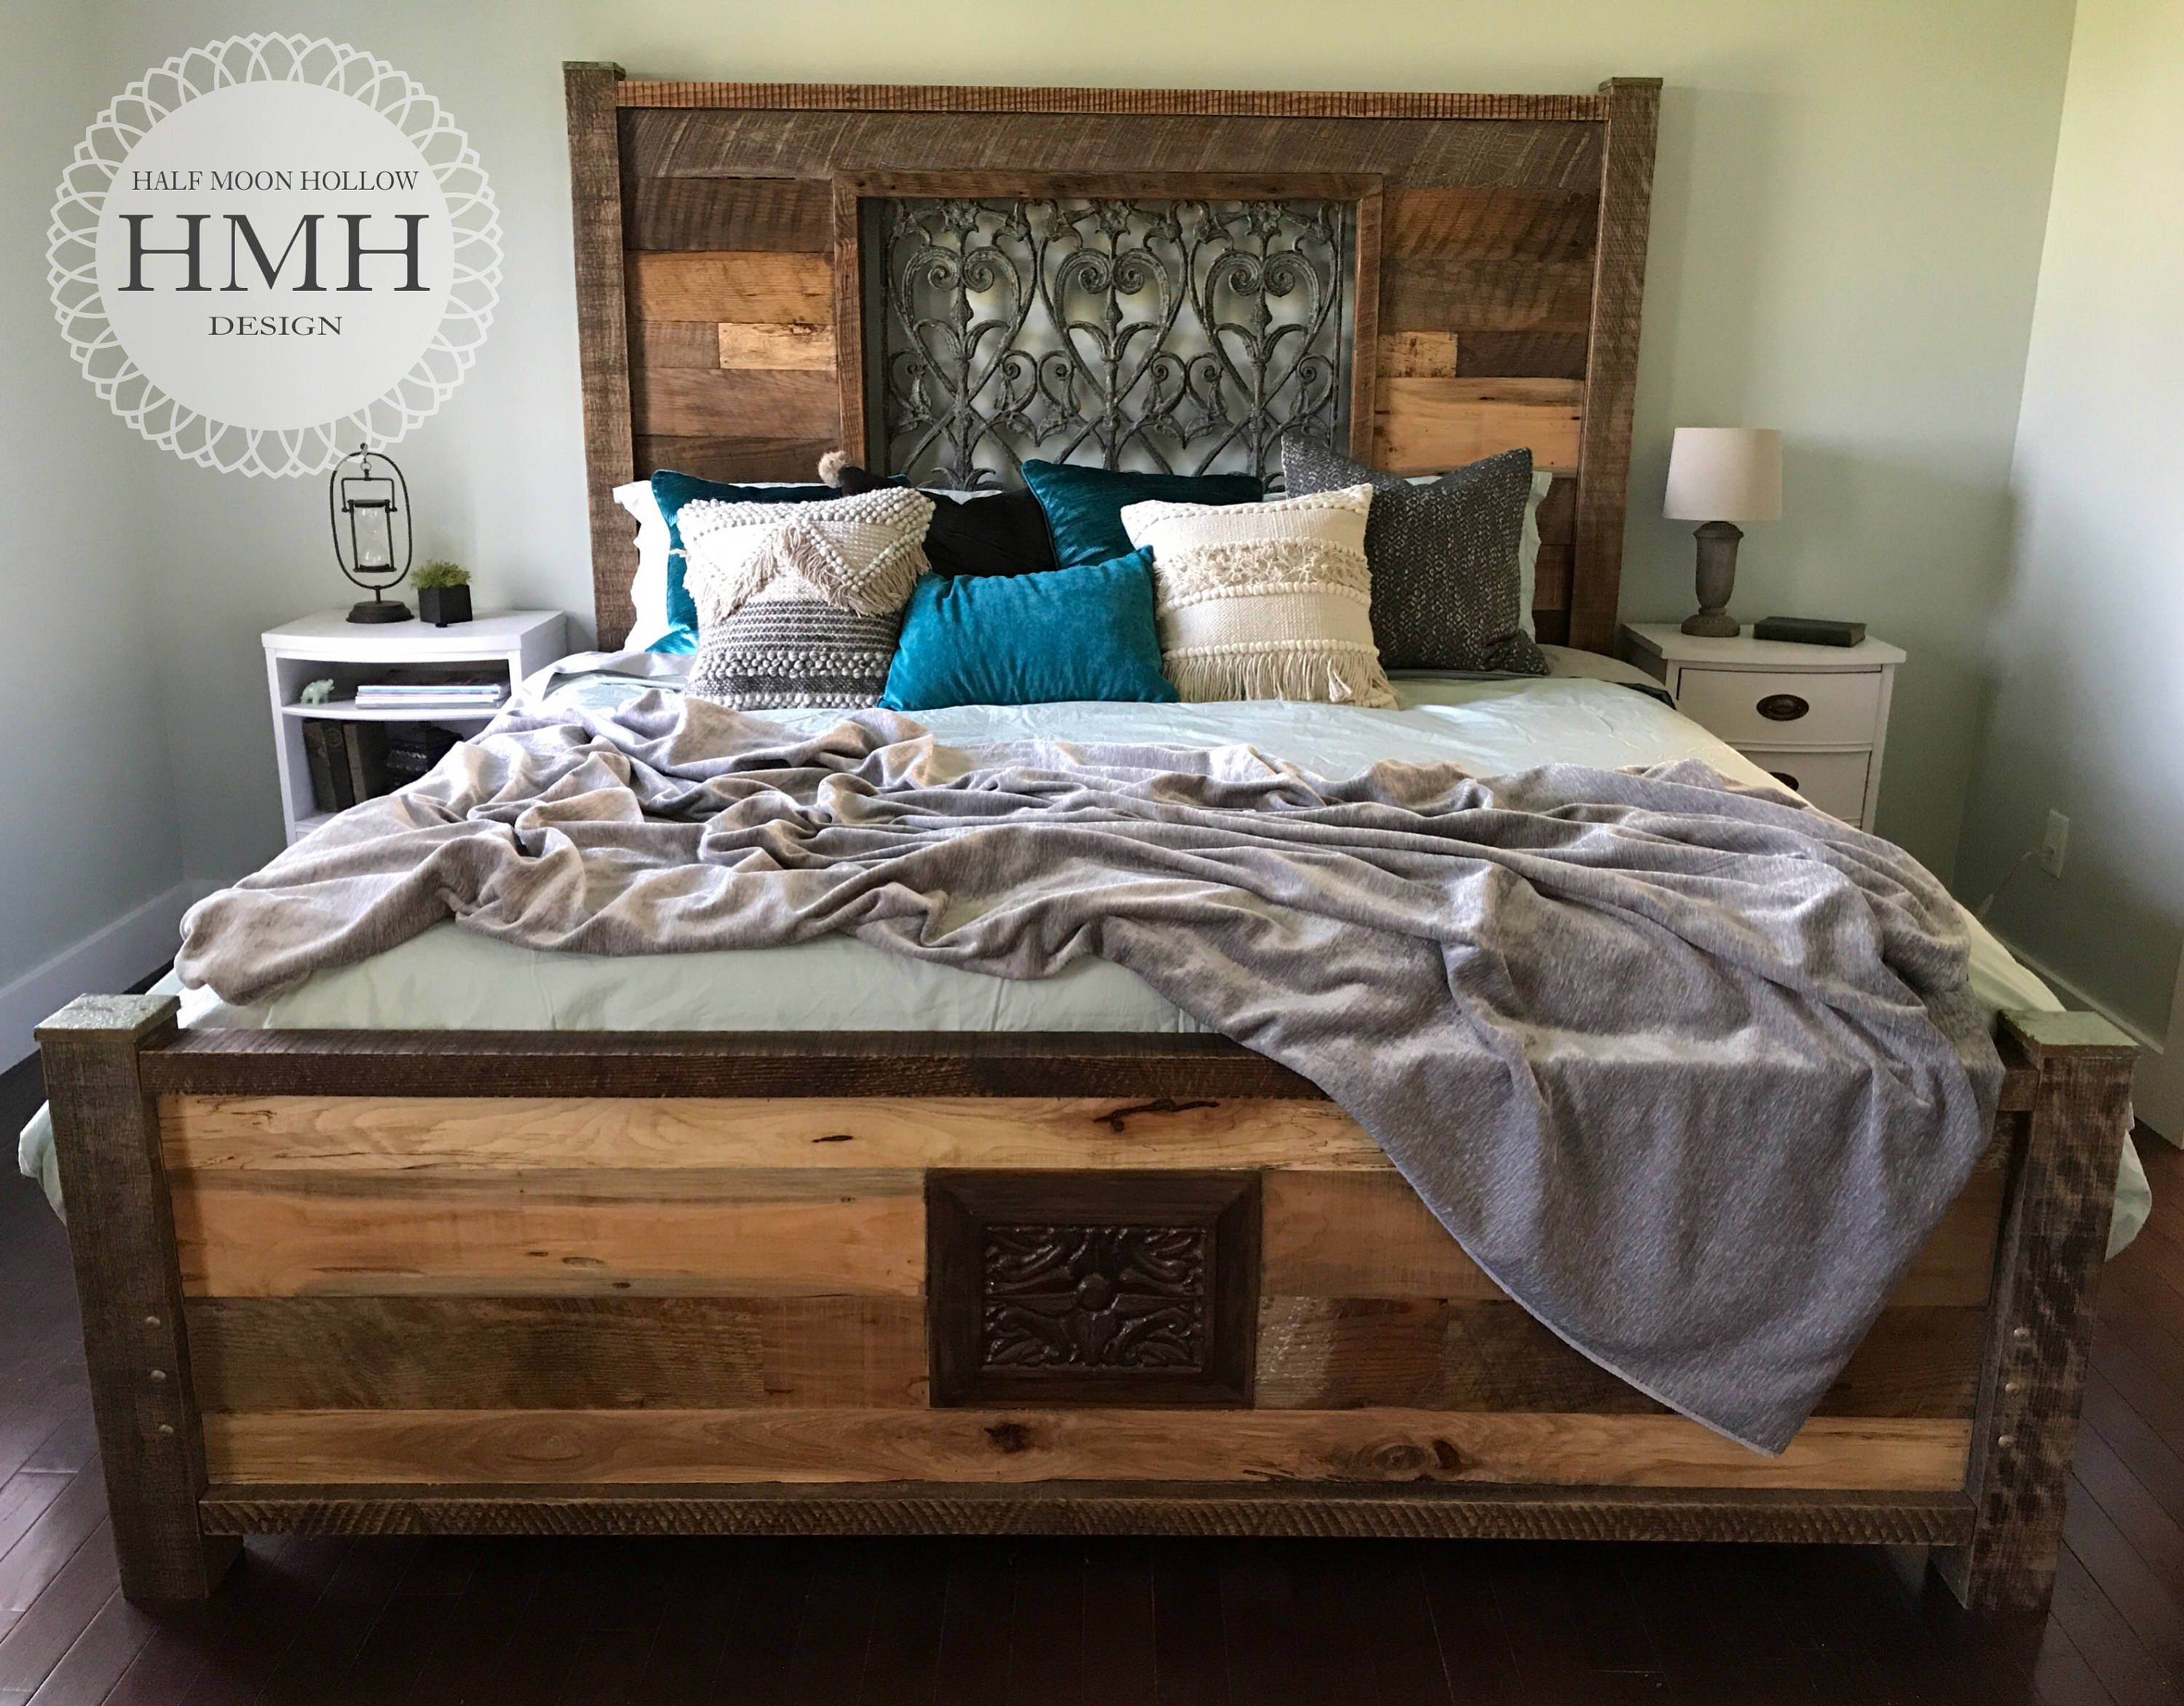 King Size Bed Eclectic Reclaimed Wood Mediterranean Farmhouse Bed Frame